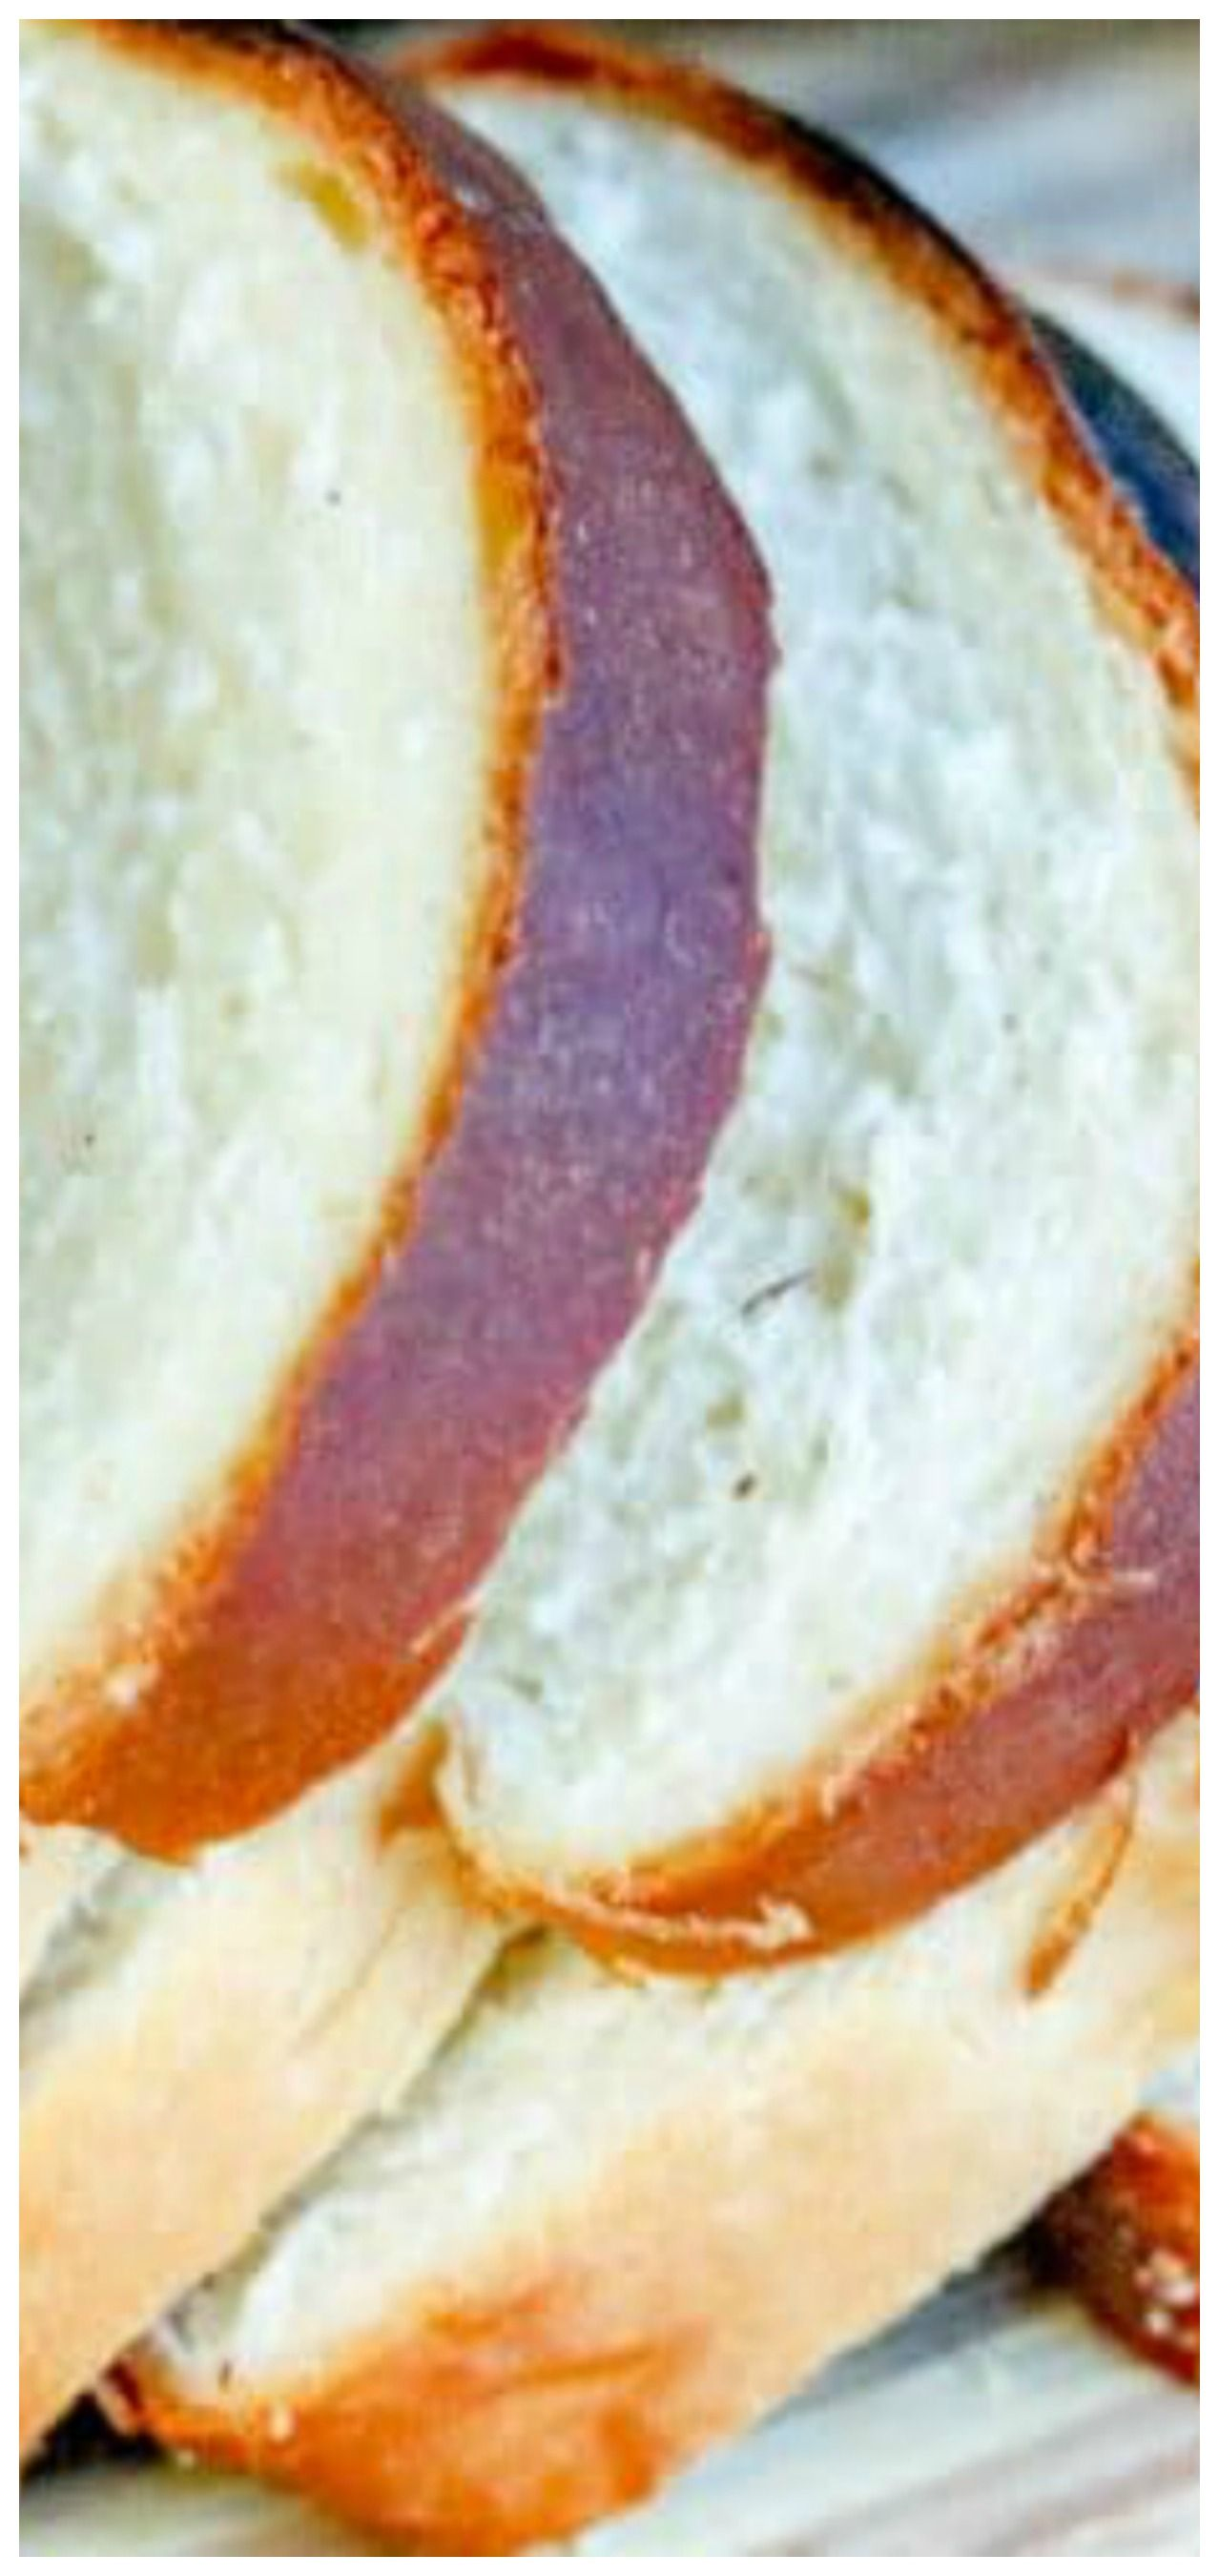 Soft Buttermilk Sandwich Bread A Beautifully Soft Homemade White Sandwich Bread With A Touch Of Ext Bread Recipes Homemade Tasty Bread Recipe Sandwich Bread